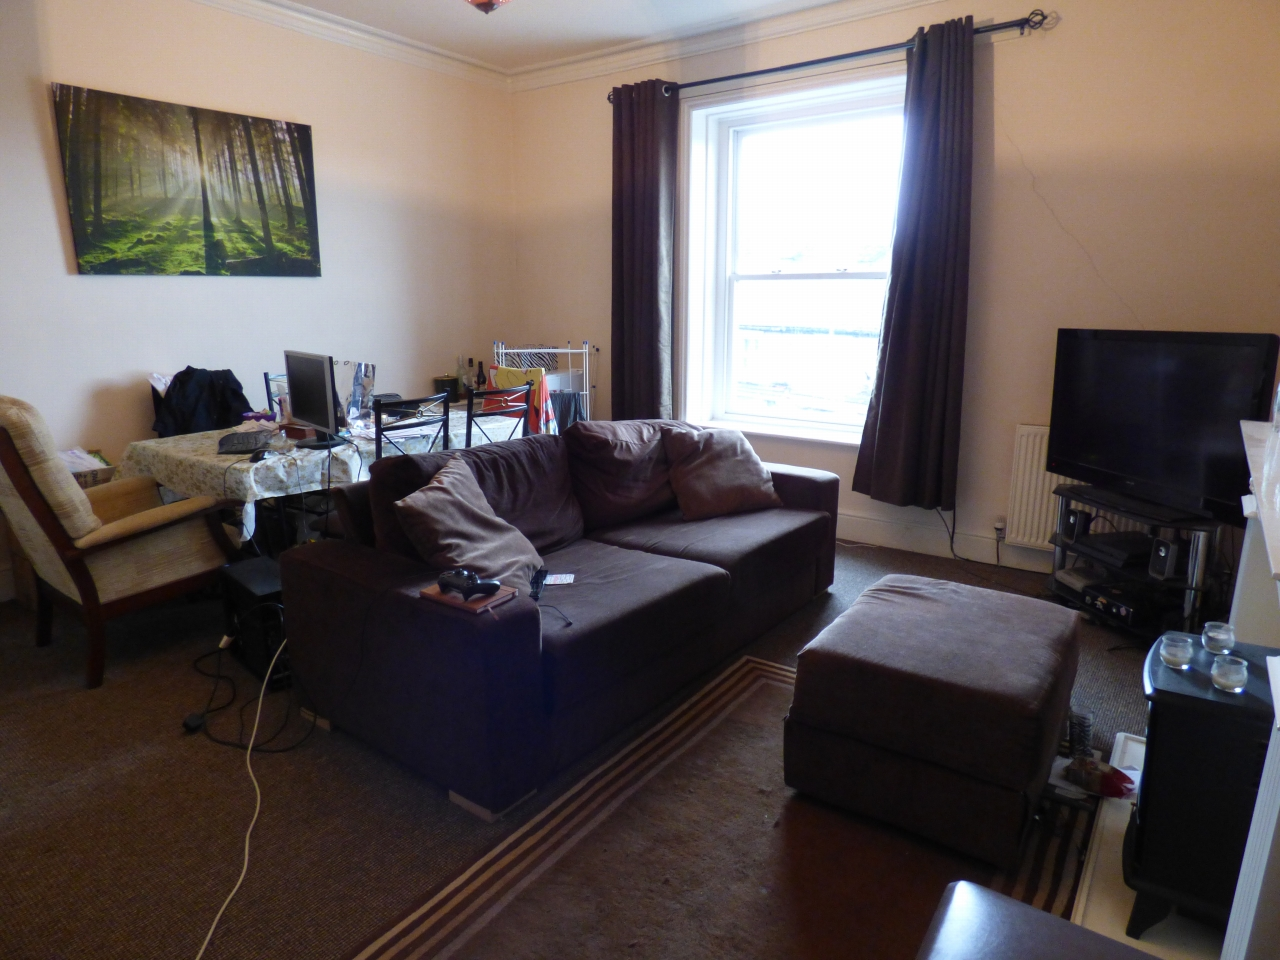 2 Bedroom Retail Property (high Street) For Sale - Image 7